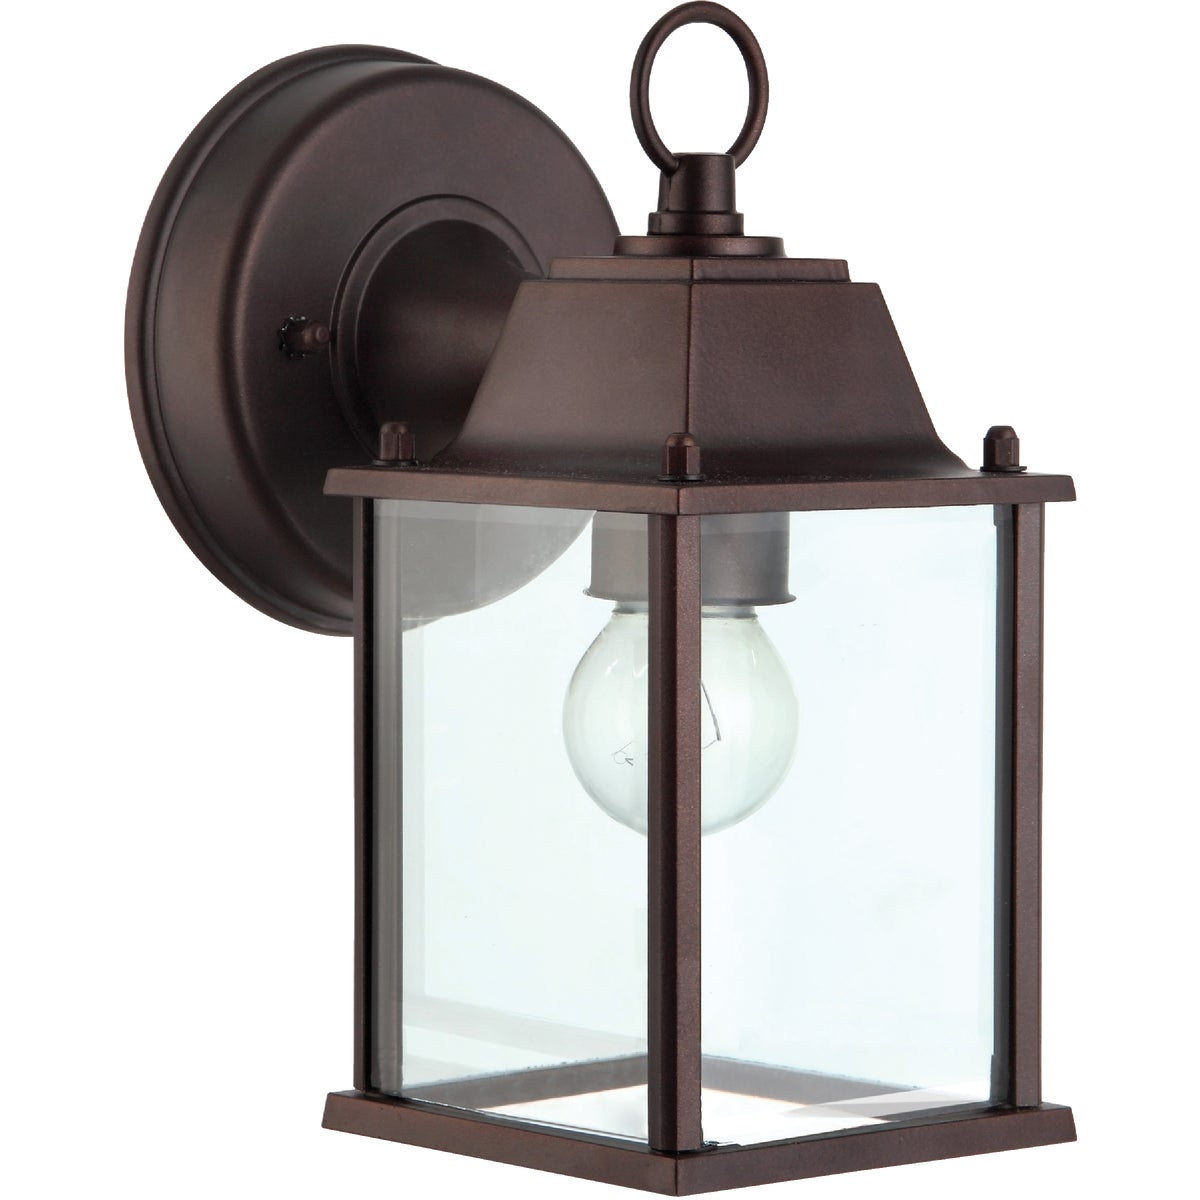 1BLB ORB OUTDOOR FIXTURE - IOL3ORB by Canarm Gs